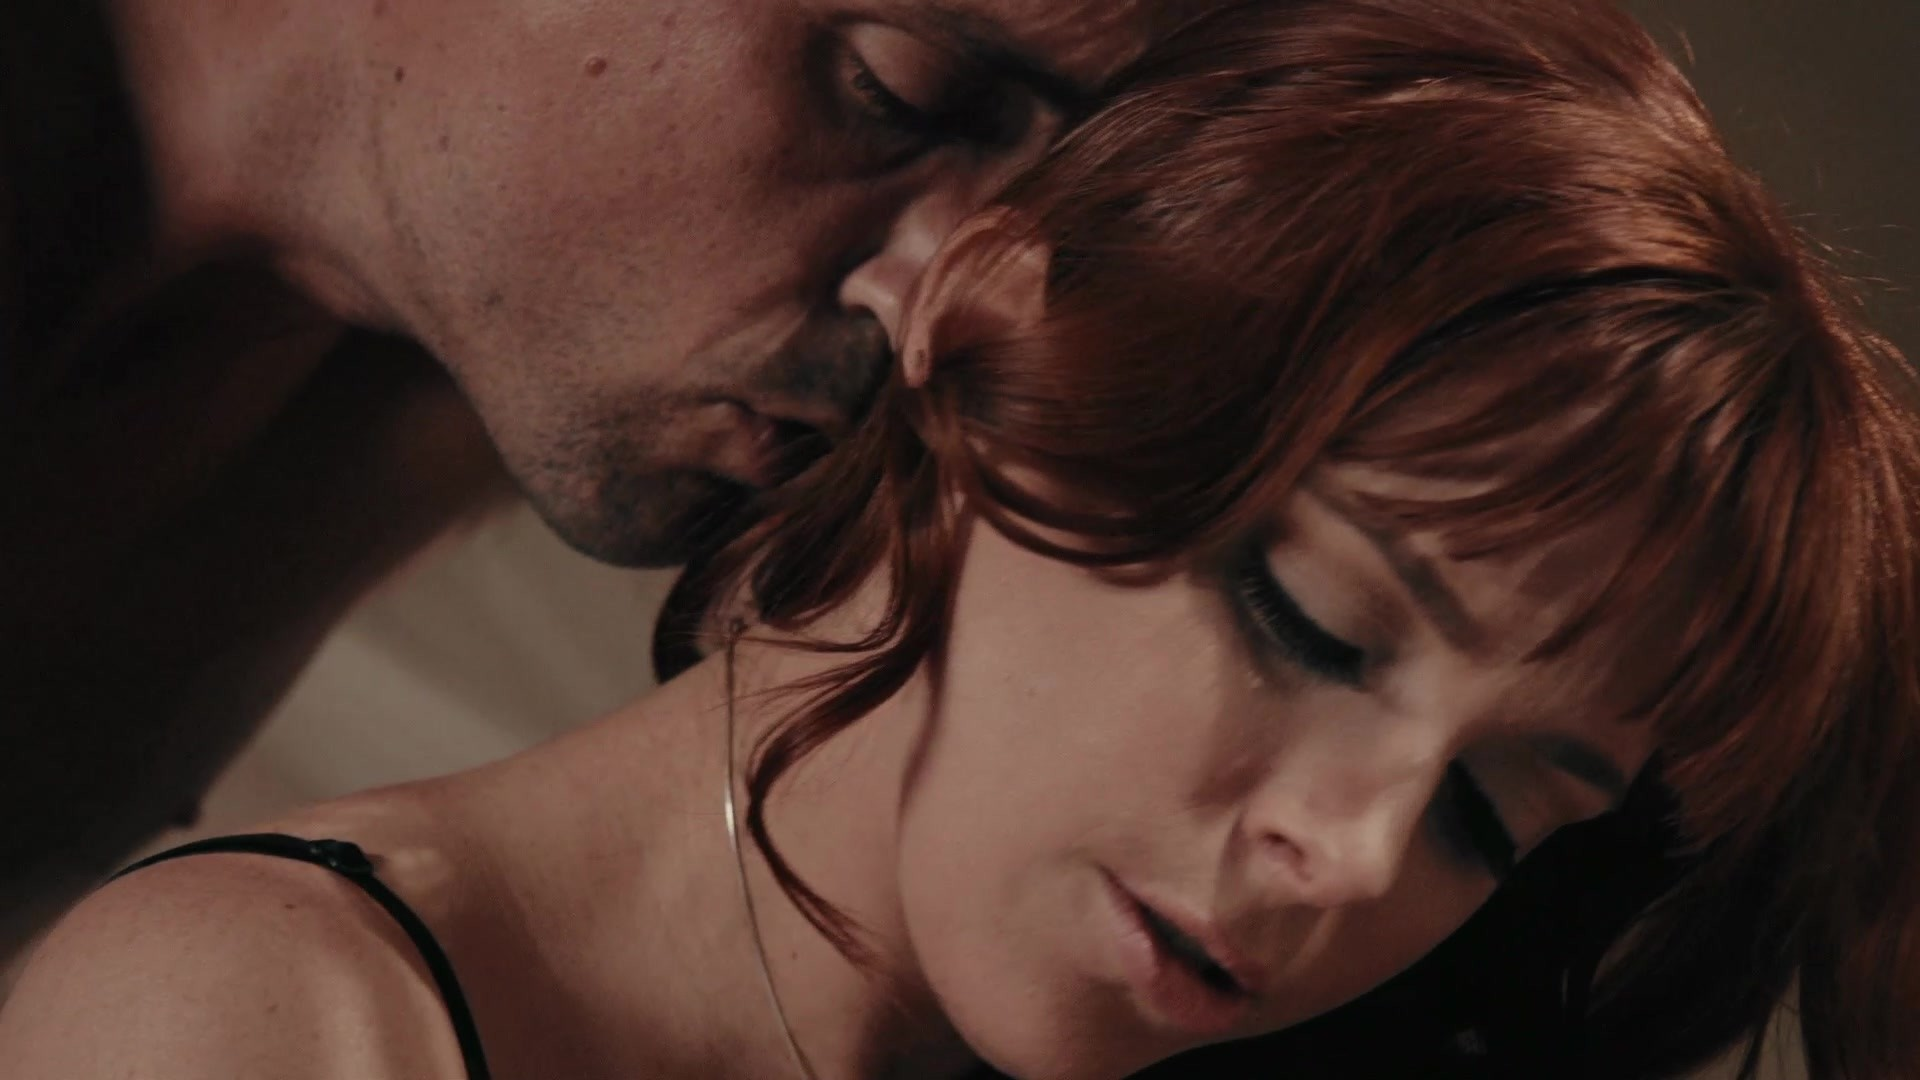 Scene with Richie Calhoun and Penny Pax - image 12 out of 20